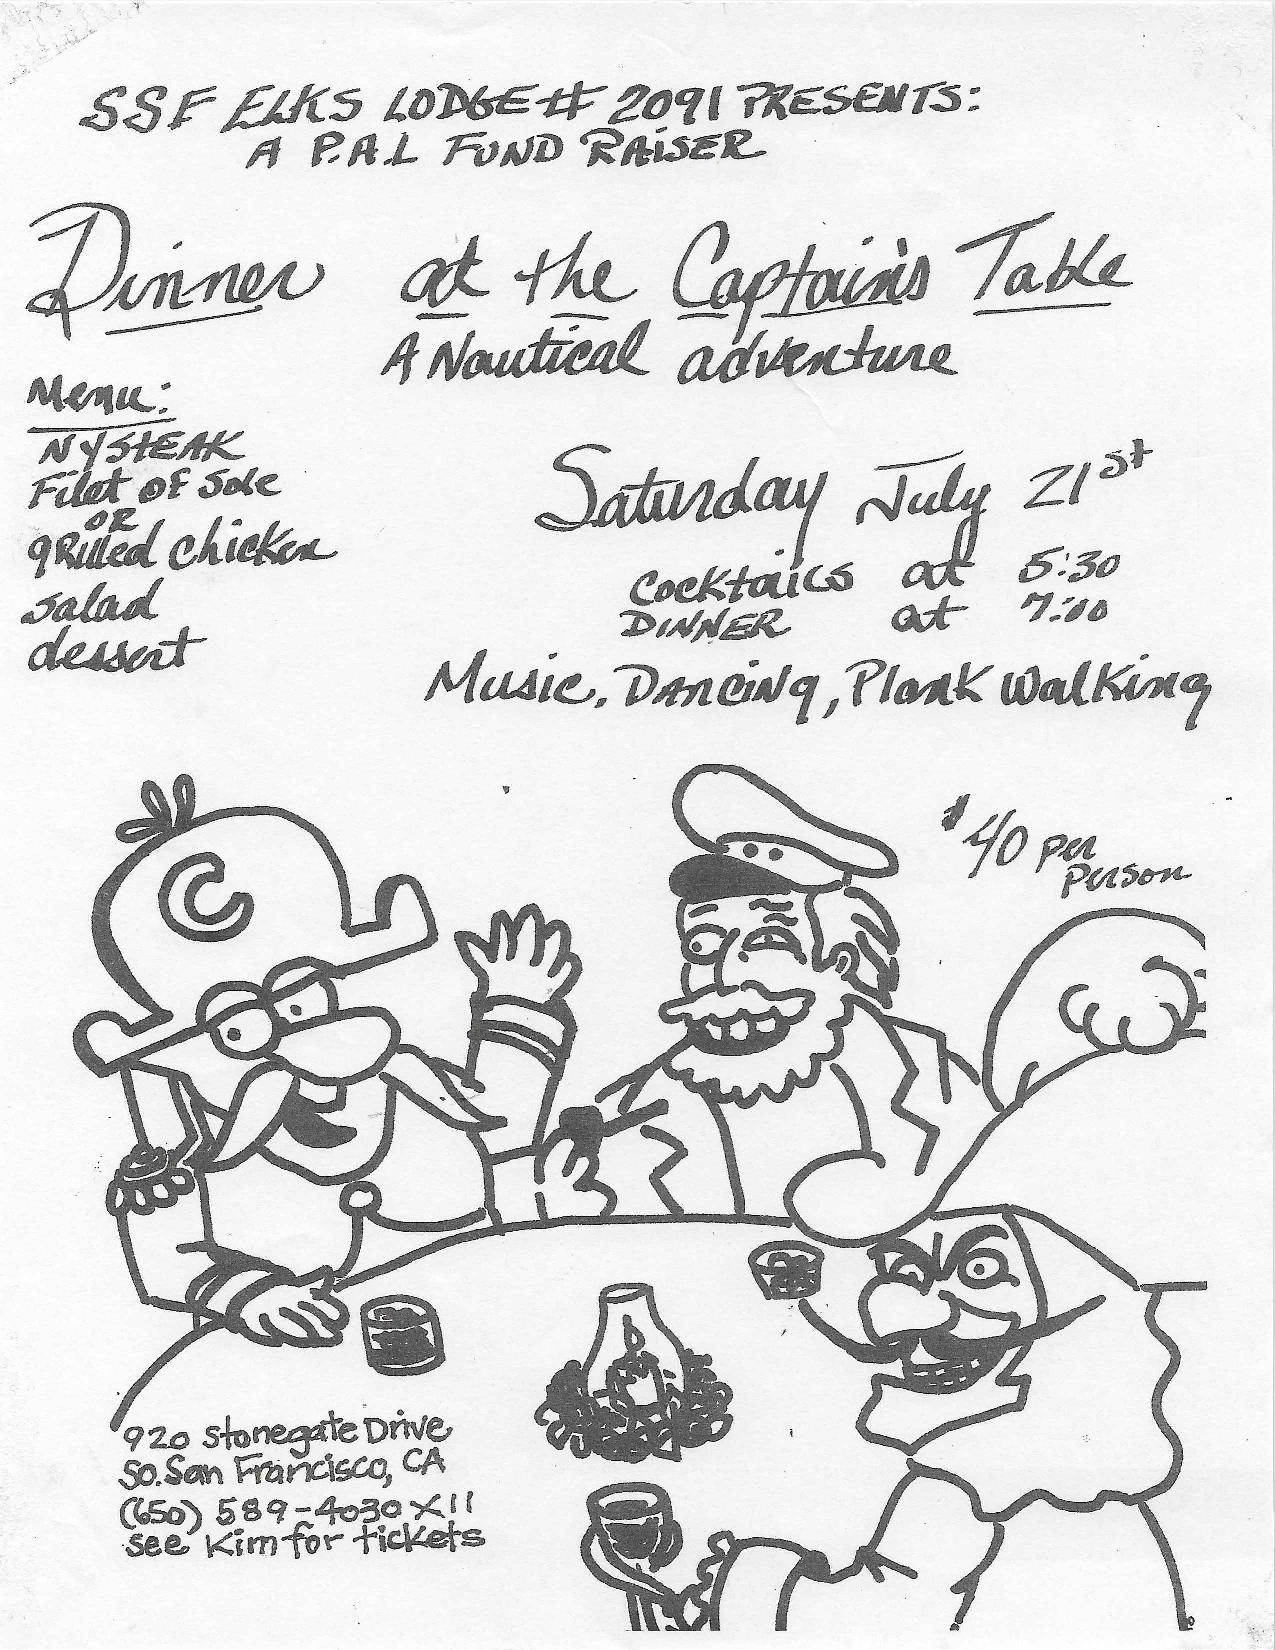 ELKS Sponsored PAL Fundraiser: Dinner at the Captains Table and Nautical Adventures set for July 21st